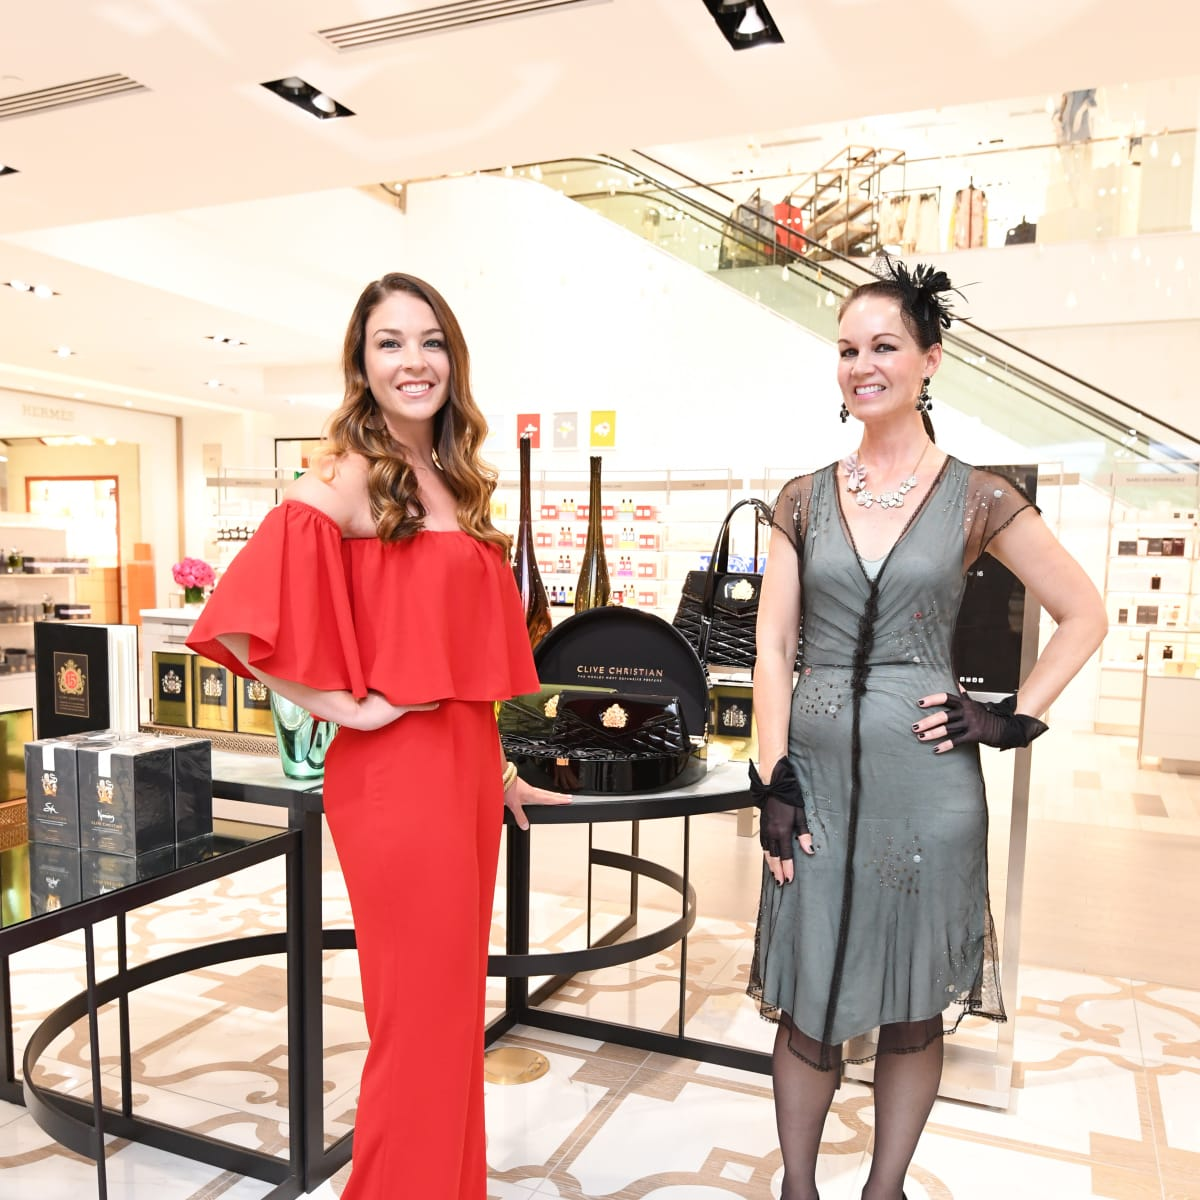 Heart of Fashion, Clive Christian Event, 6/16  Jaquel Andrews, Beth Muecke